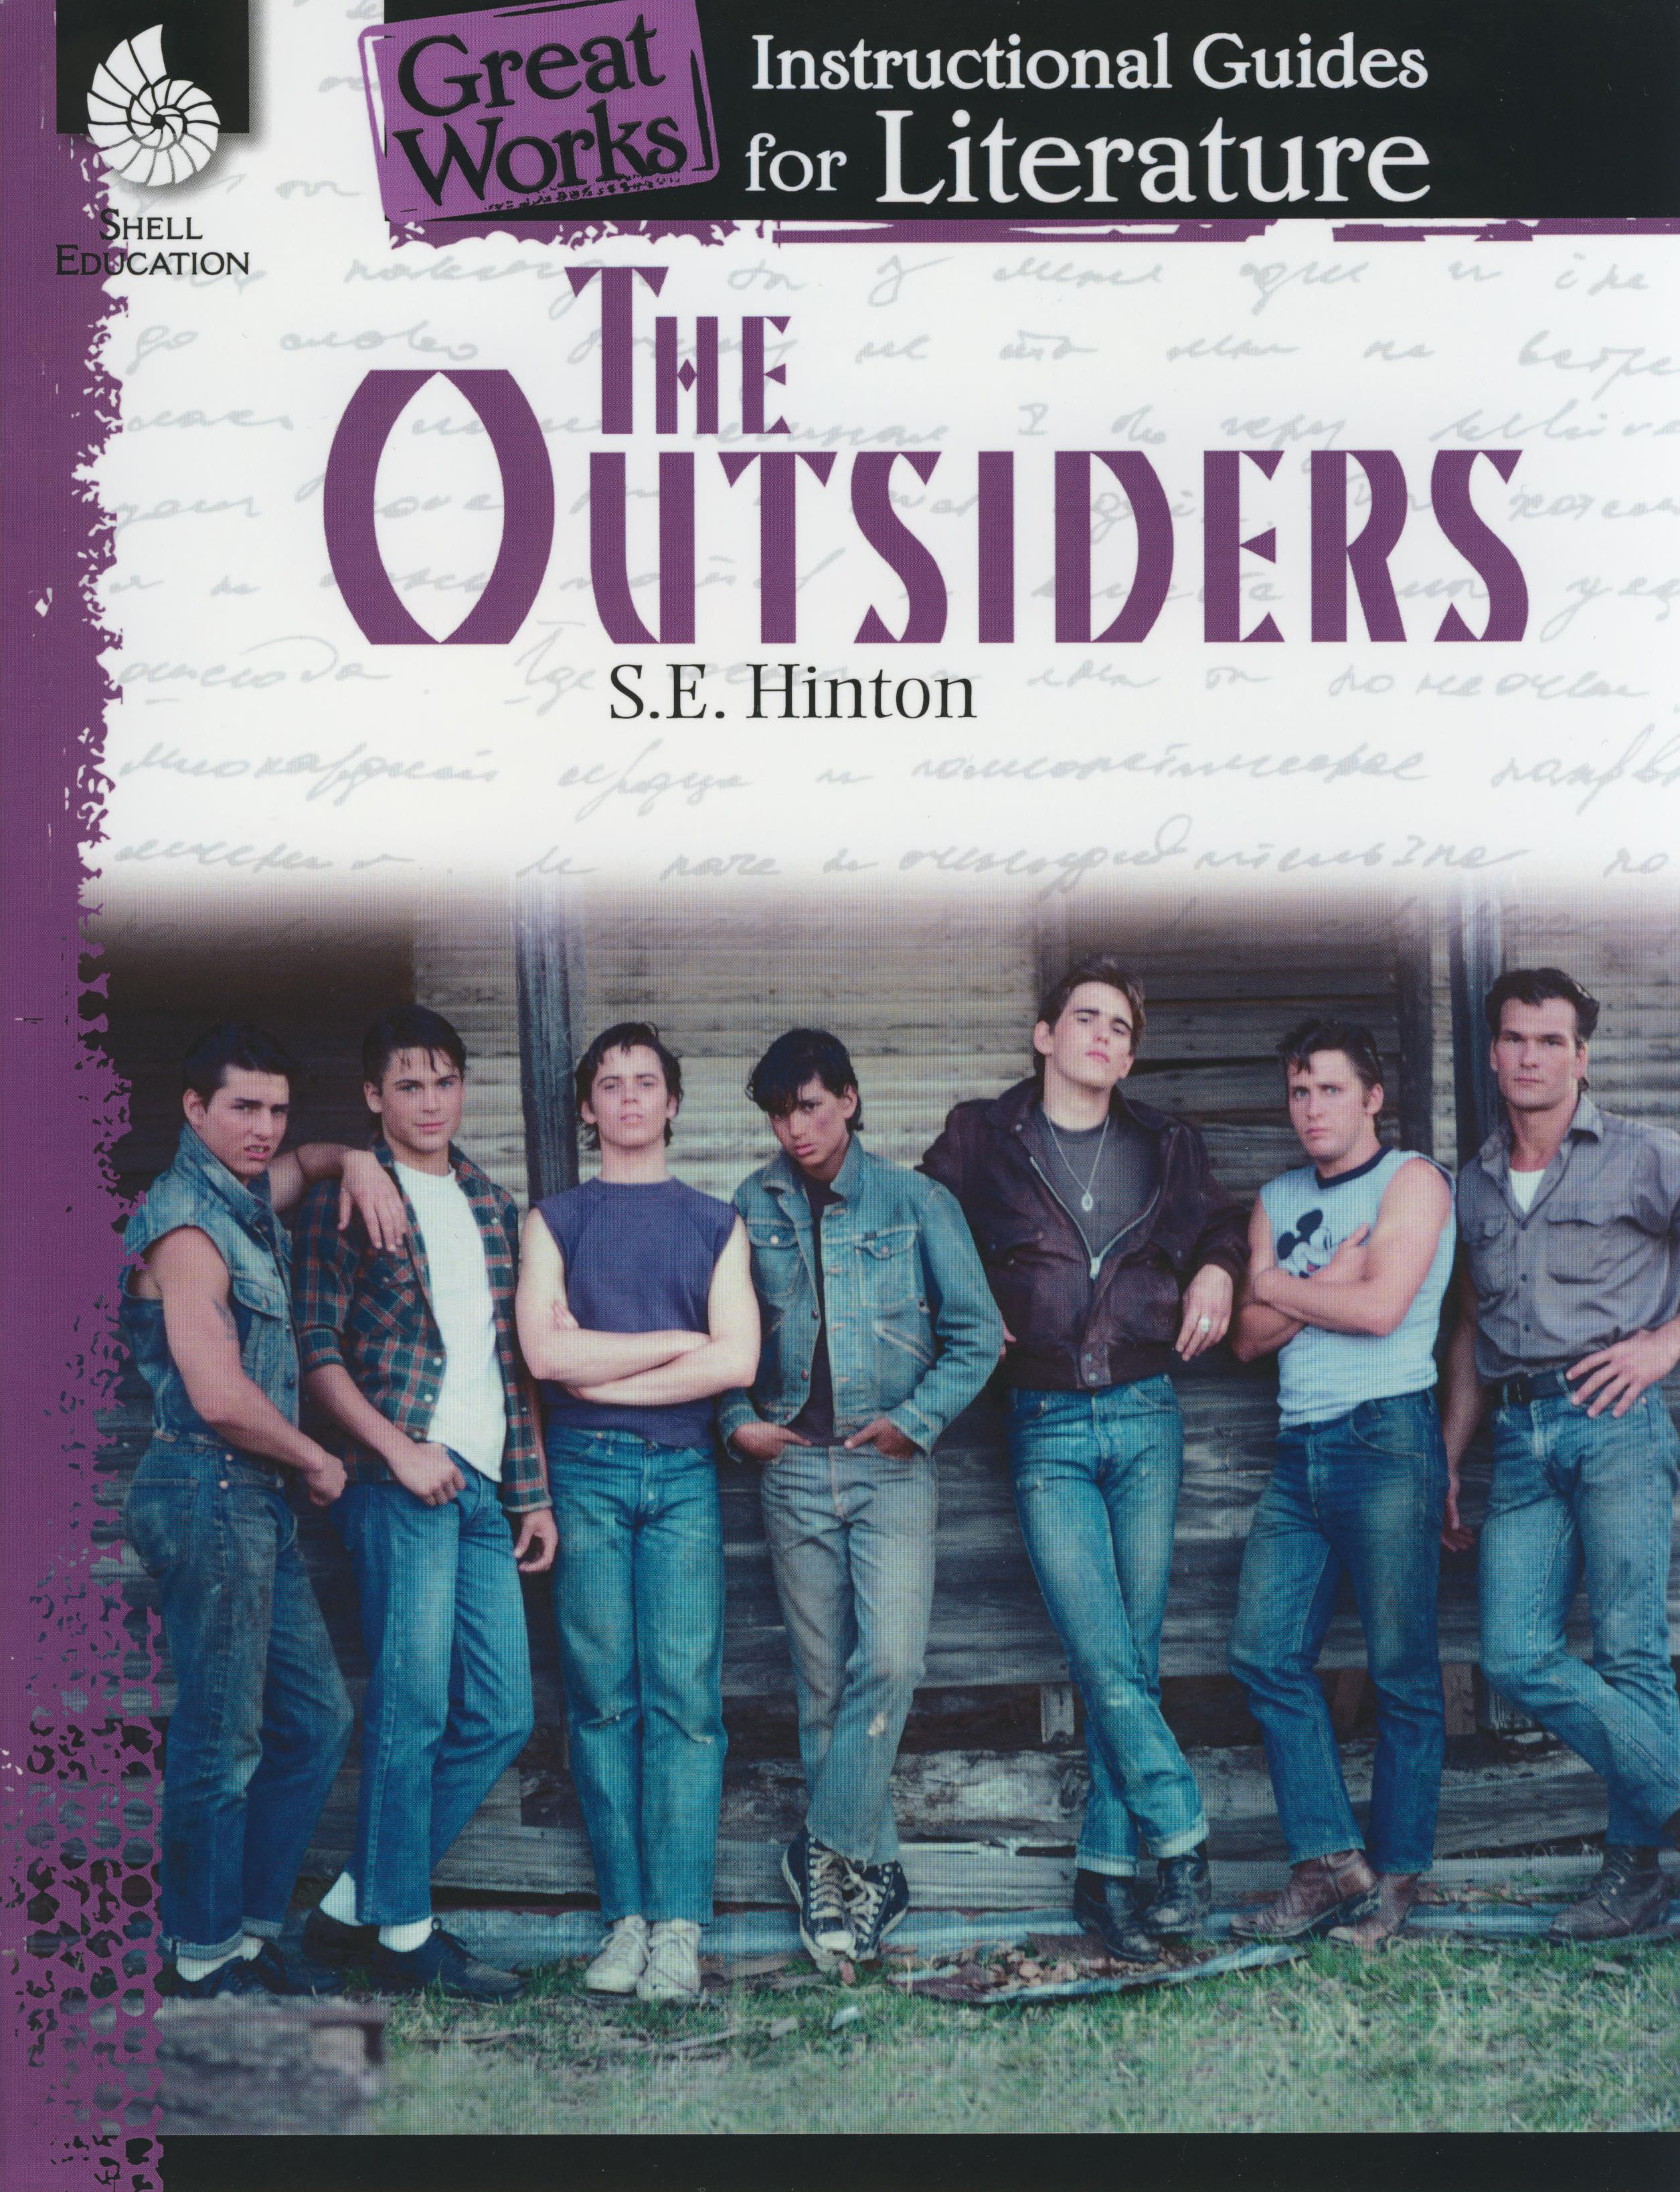 Great Works Instructional Guide for Literature: The Outsiders